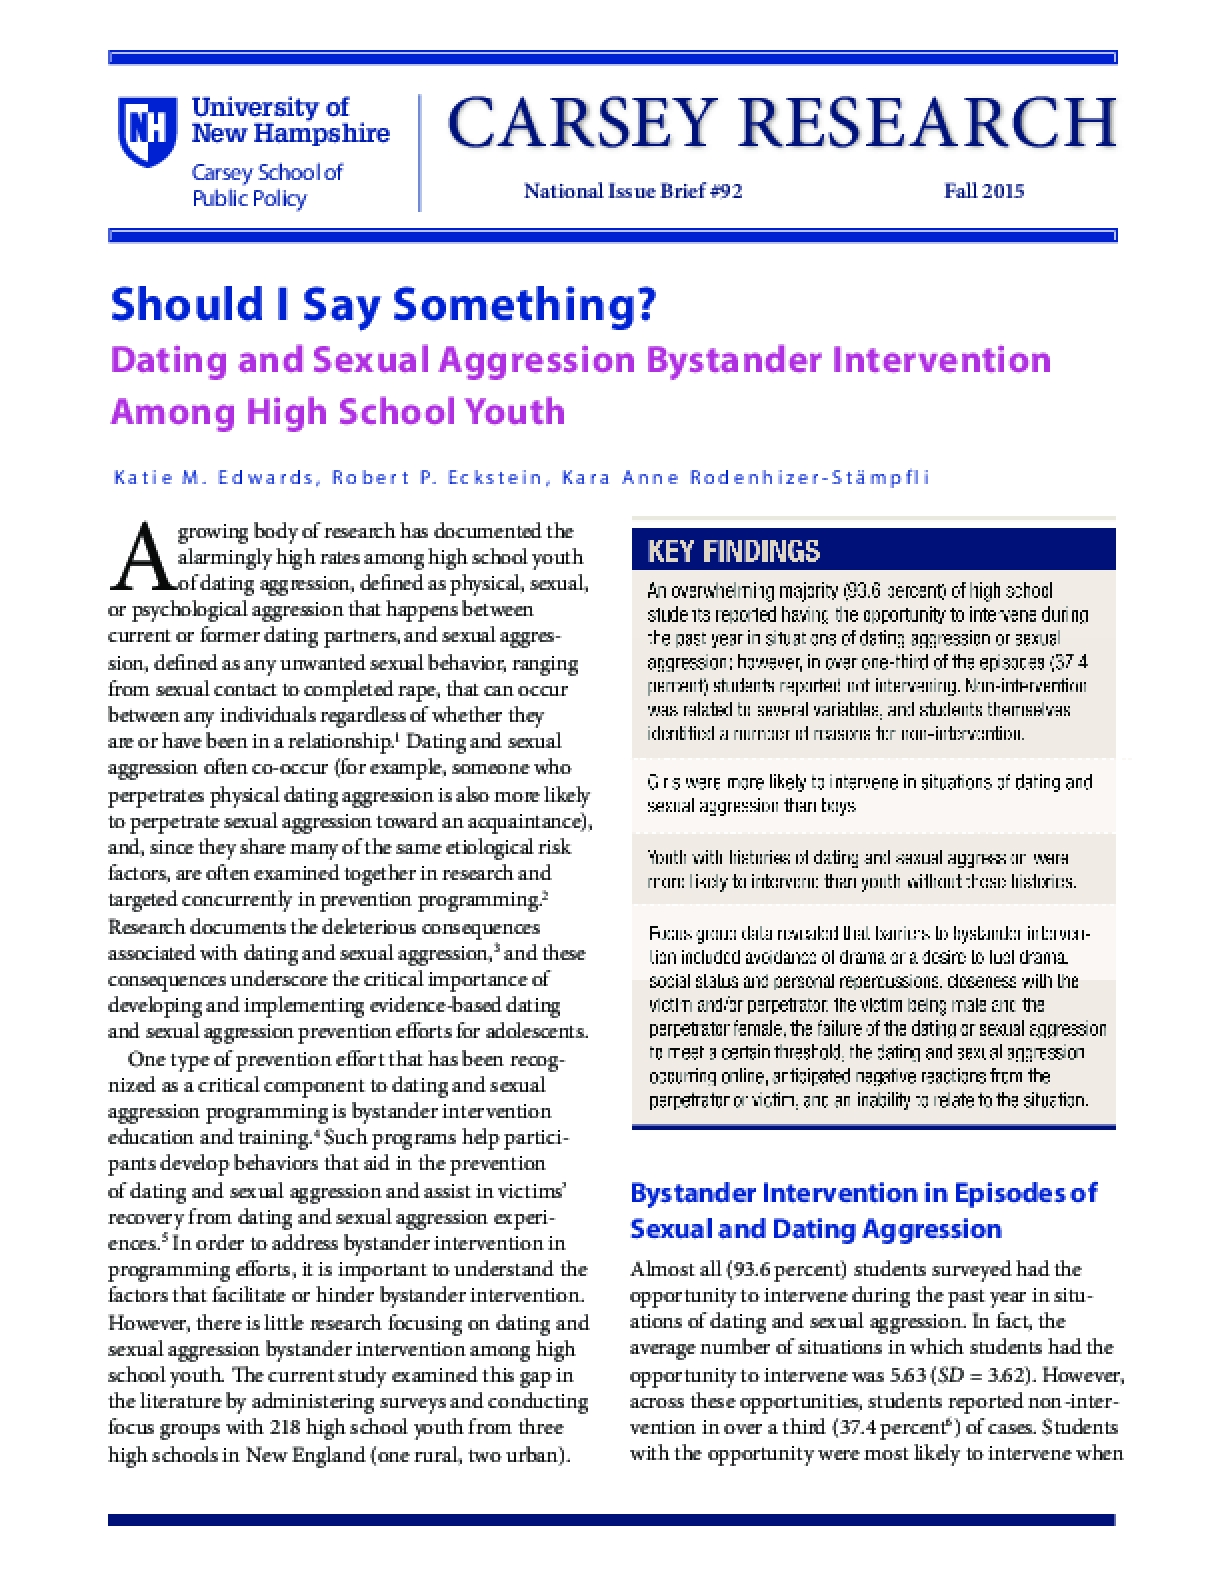 Should I Say Something?: Dating and Sexual Aggression Bystander Intervention Among High School Youth